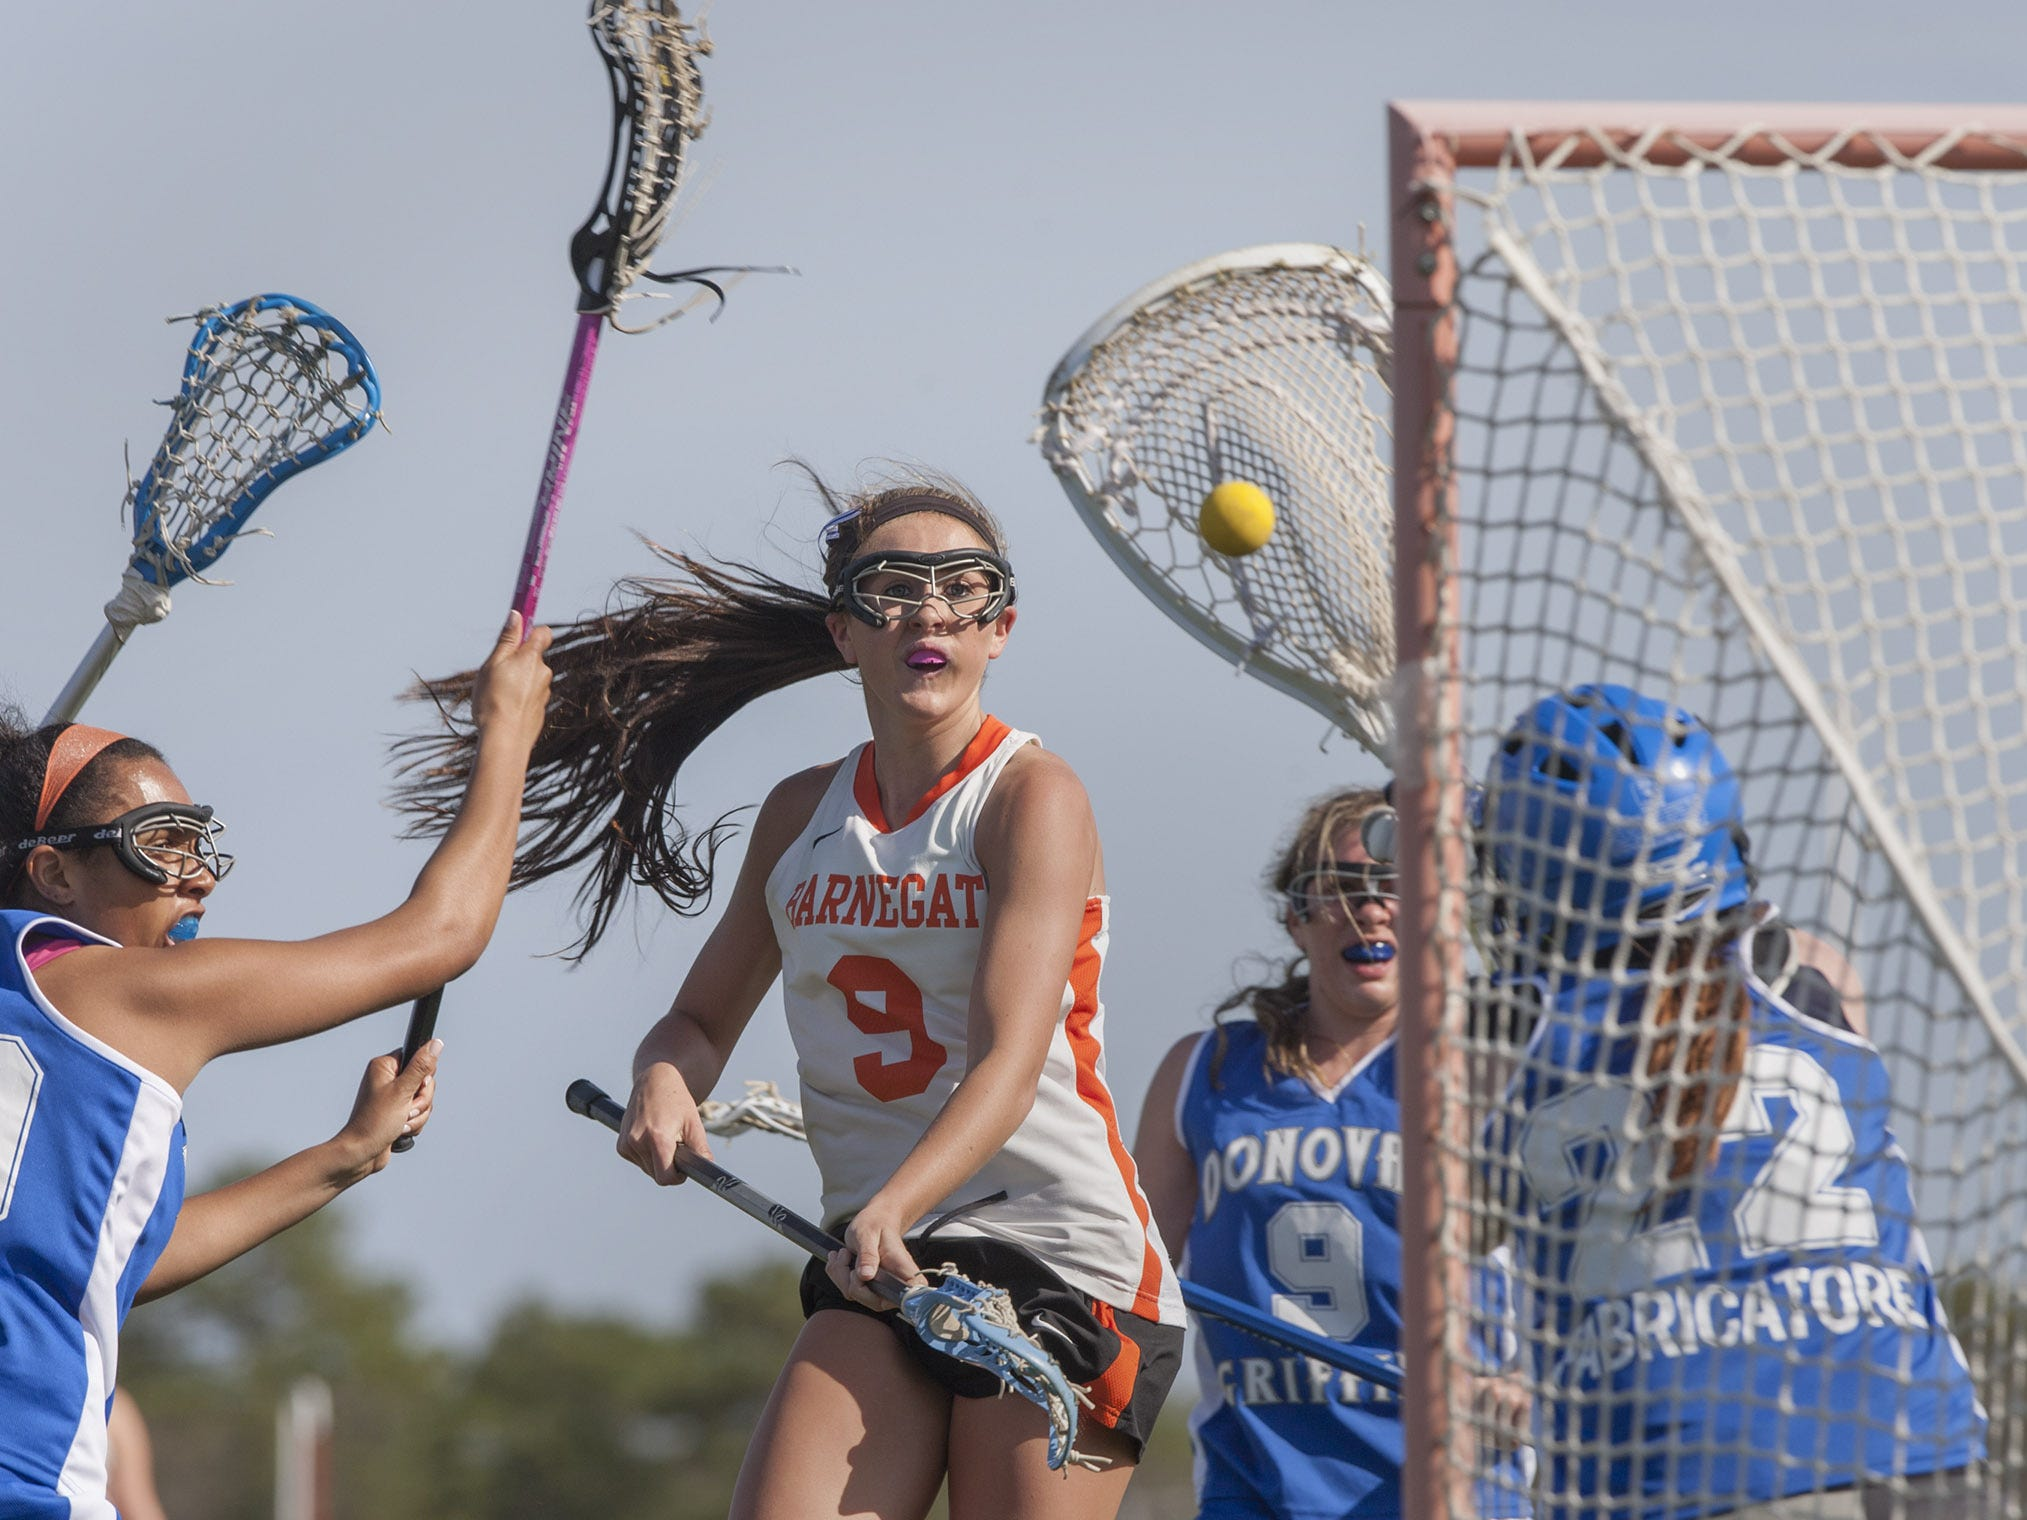 Barnegat's Nicole Federovitch shoots and scores against Monsignor Donovan goalie Kelly Fabricatore during first-half lacrosse action on Monday. Peter Ackerman/staff photographer Barnegat's Nicole Federovitch shots and score during first half action against Monsignor Donovan goalie Kelly Fabricatore. Monsignor Donovan vs Barnegat Girls Lacrosse on April 14, 2014 in Barnegat. Peter Ackerman/Staff Photographer